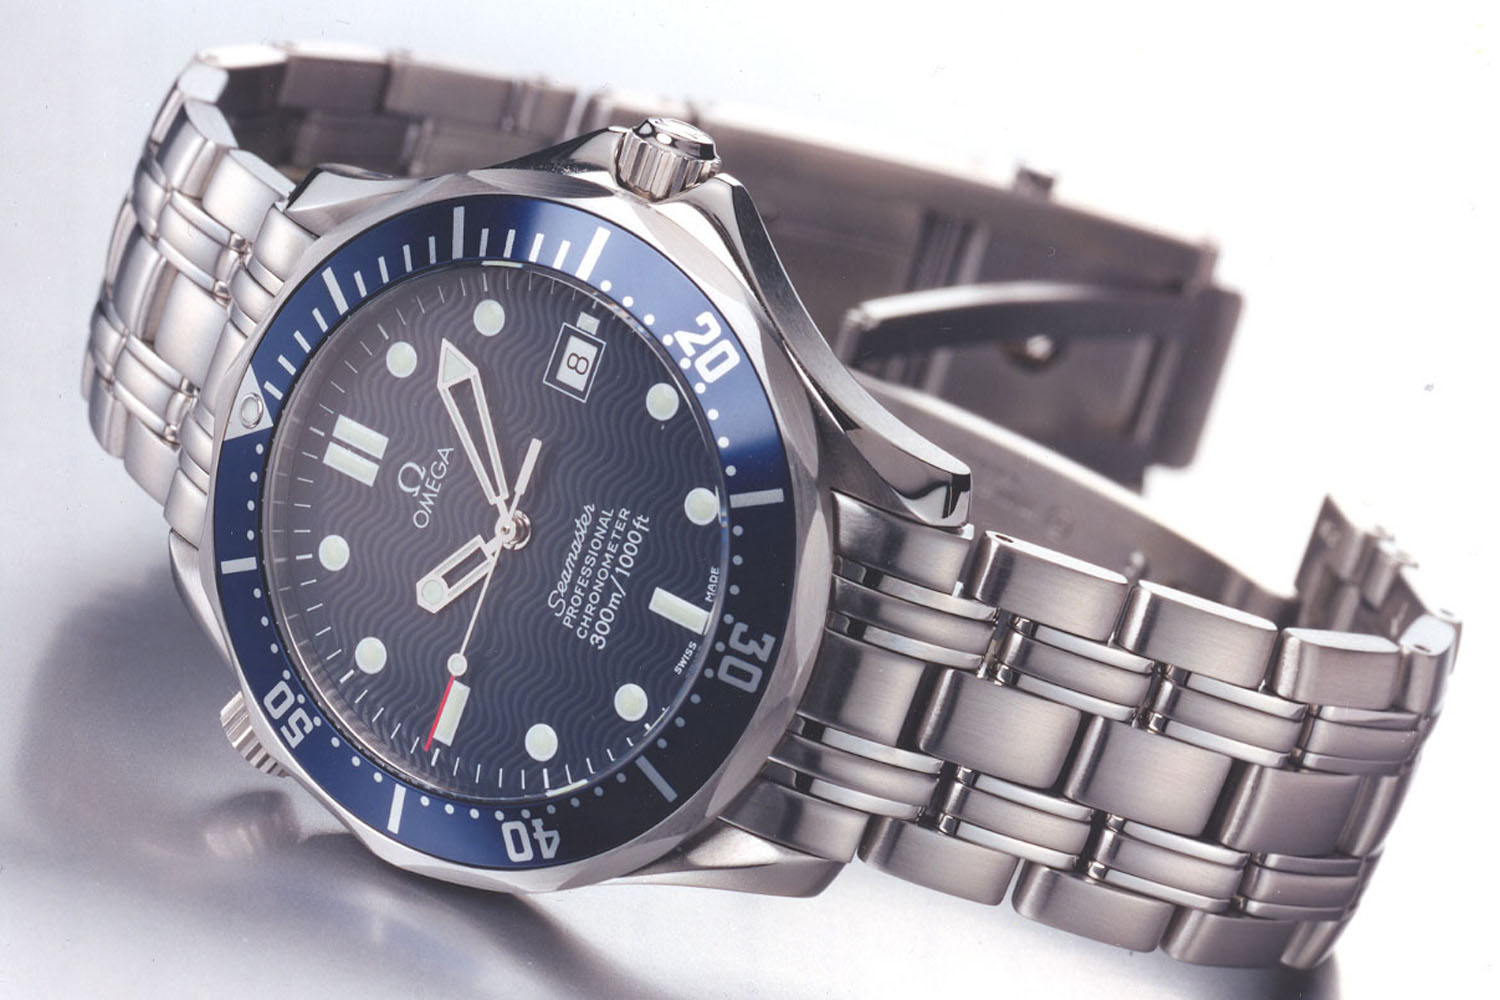 Tweedehands Omega Seamaster-horloges | Tweedehands Omega ...